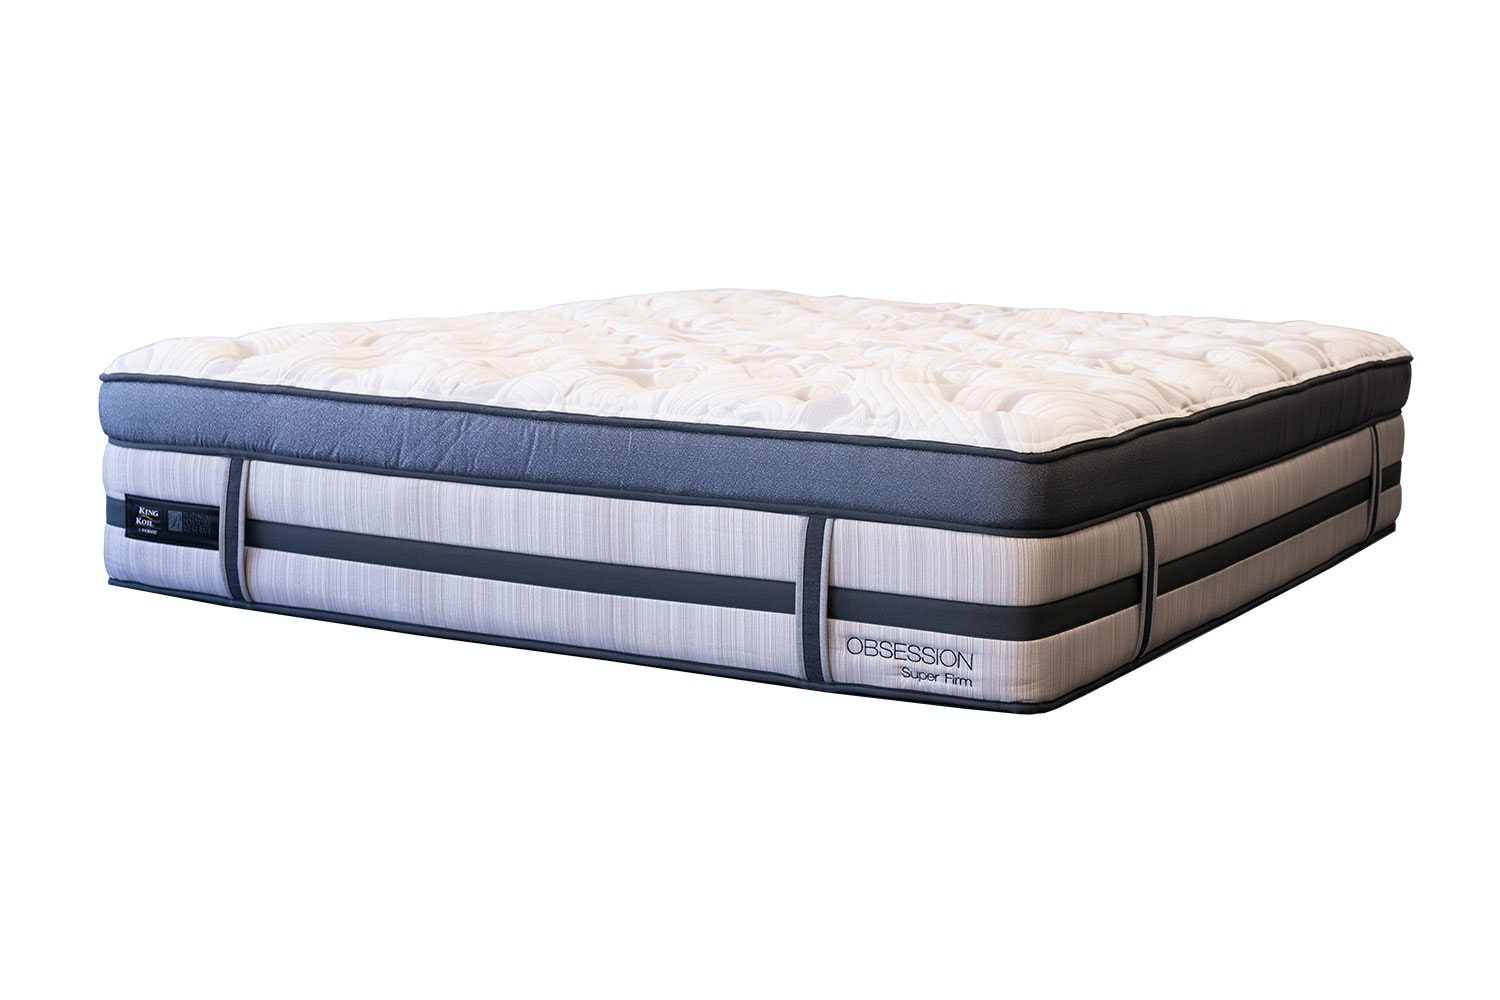 Obsession Super Firm Long Single Mattress by King Koil